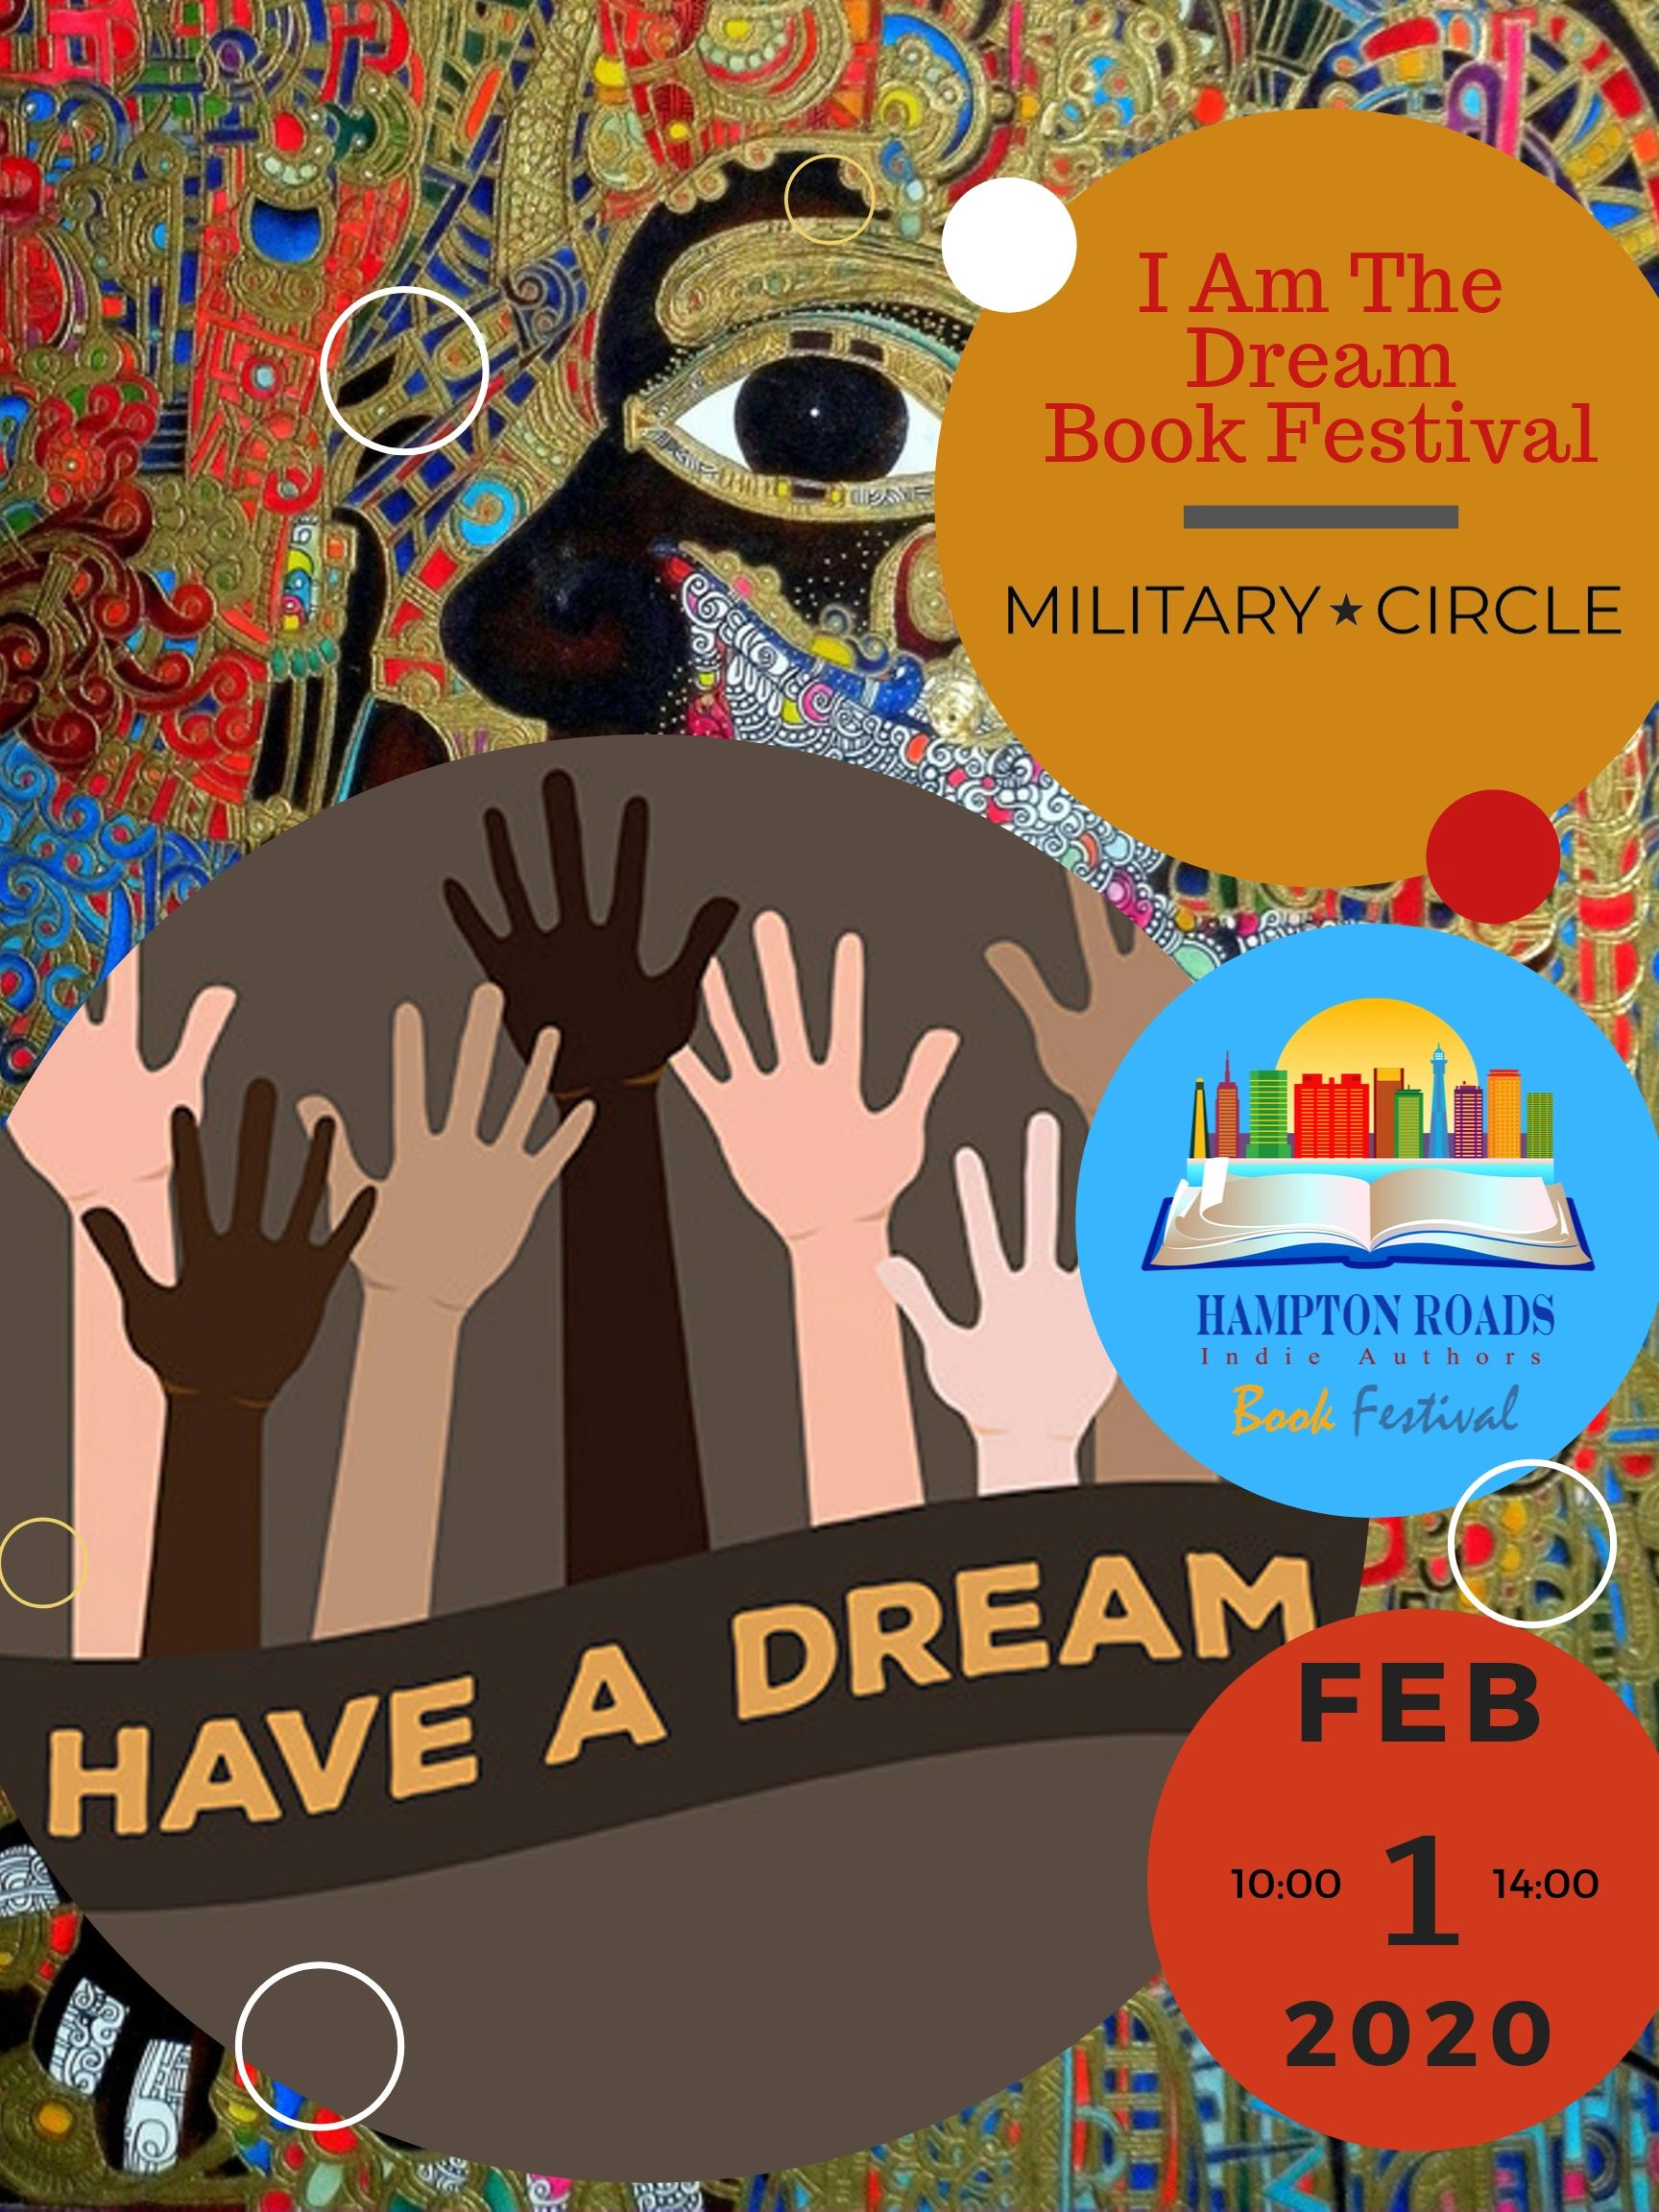 "{""blocks"":[{""key"":""8u010"",""text"":""Join us, Saturday 1, 2020, at Military Circle for the Hampton Roads Indie Authors I AM The Dream Book Festival.  We will have over 50 local authors and artist vendors plus DJ, live music, dancers, speakers, MC, and more. This event is FREE and open to the public.  More information located at https://hampton-roads-indie-author-book-festival-2019-103250.square.site/"",""type"":""unstyled"",""depth"":0,""inlineStyleRanges"":[],""entityRanges"":[],""data"":{}}],""entityMap"":{}}"